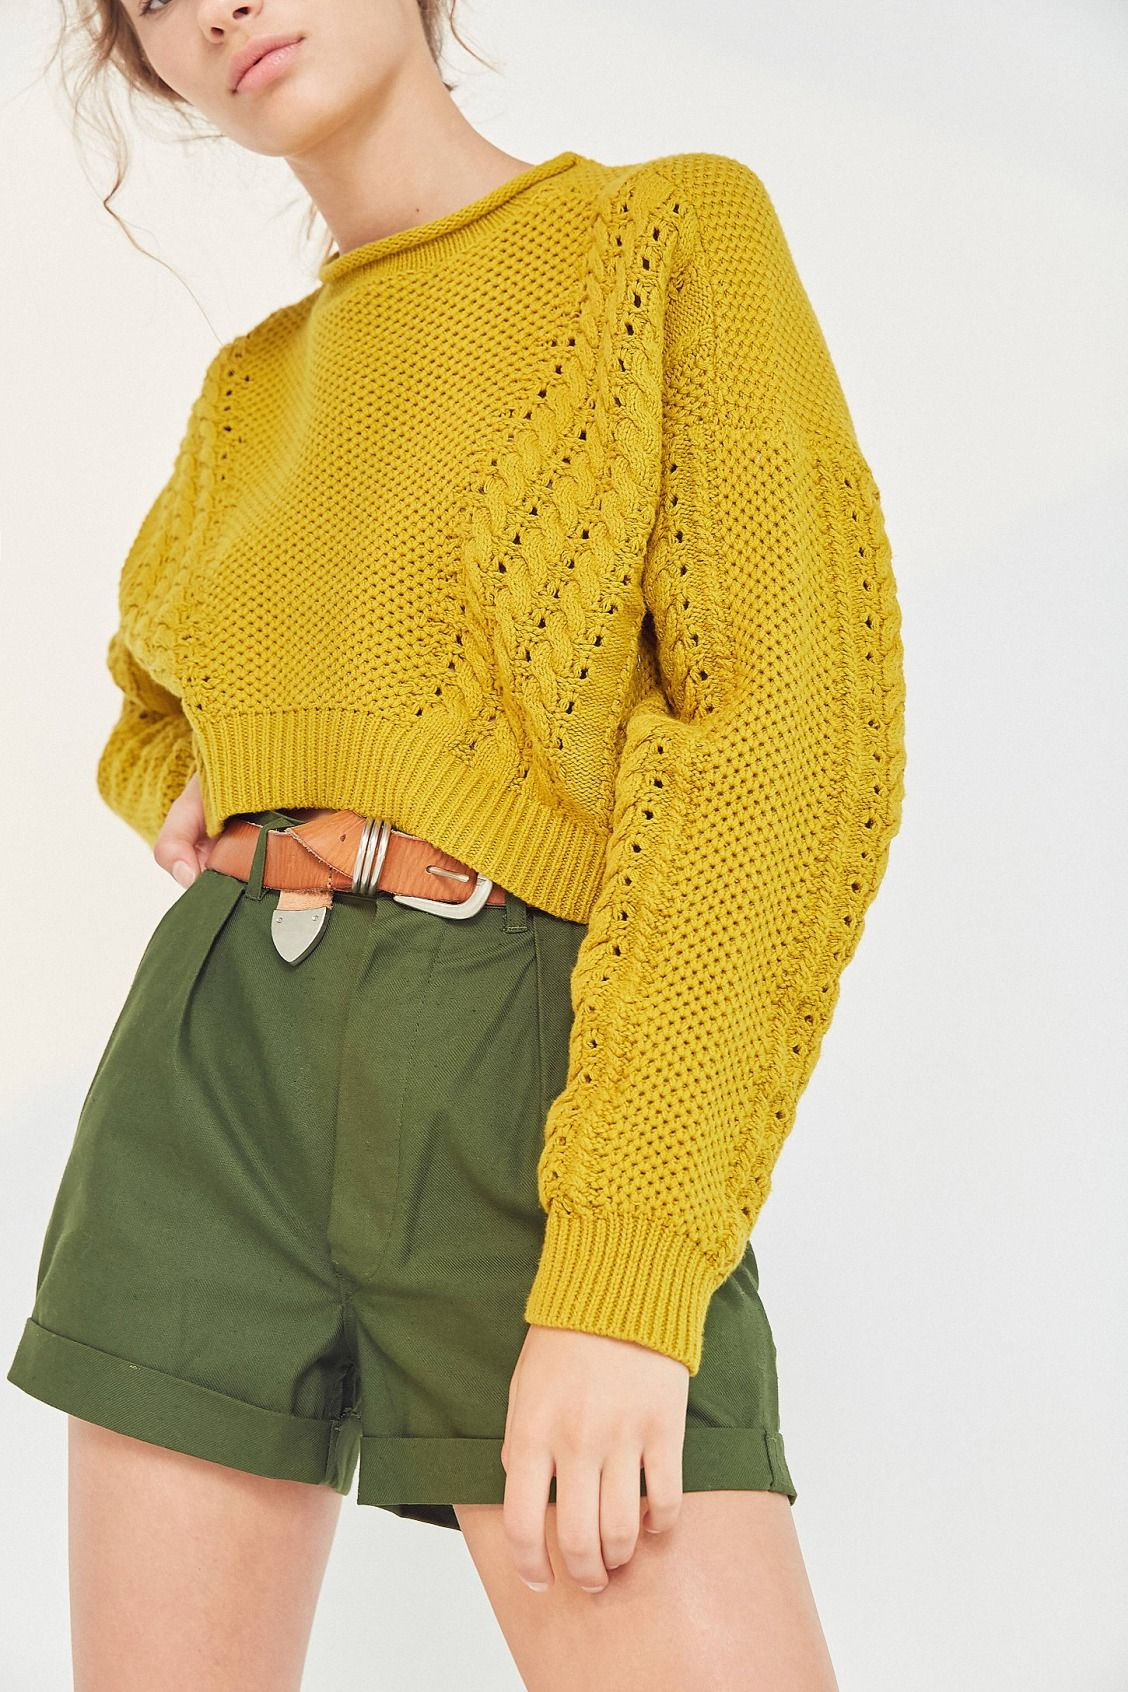 BDG Slouchy High/Low Cable Knit Sweater | Cable knit sweaters ...